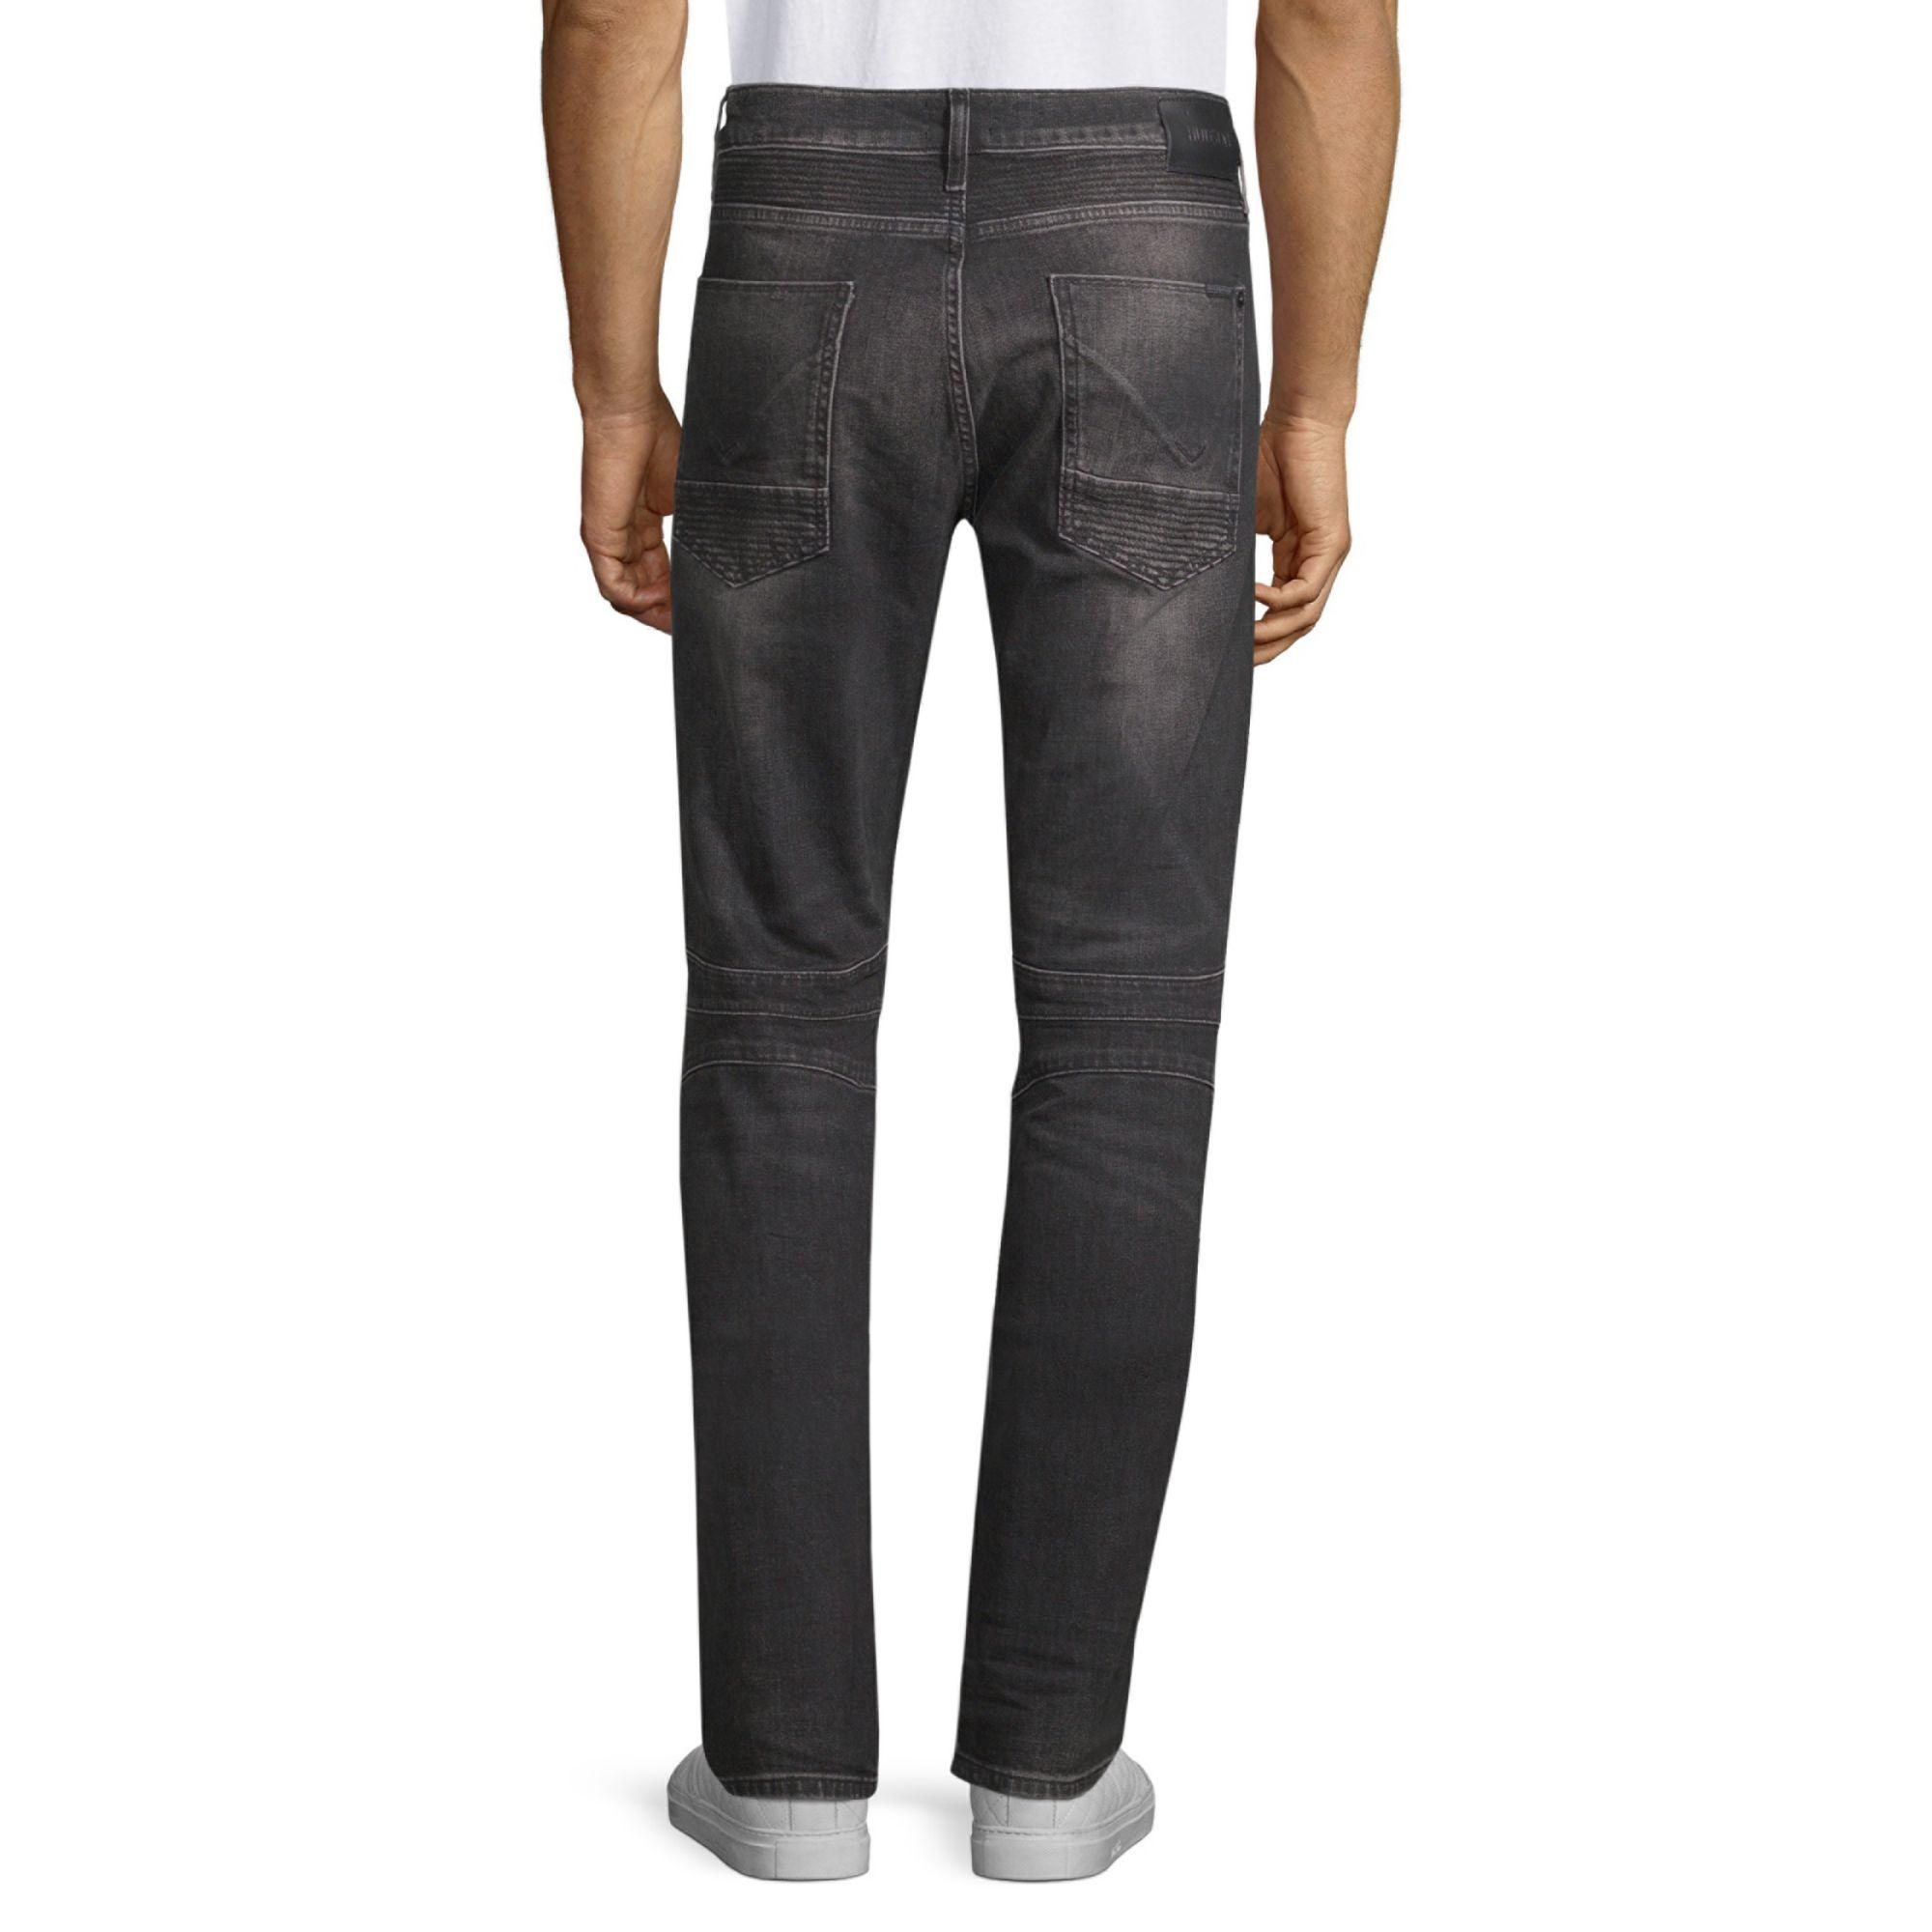 Hudson Jeans Denim Men's The Blinder Skinny Biker Jeans - Carbon Fiber in Black for Men